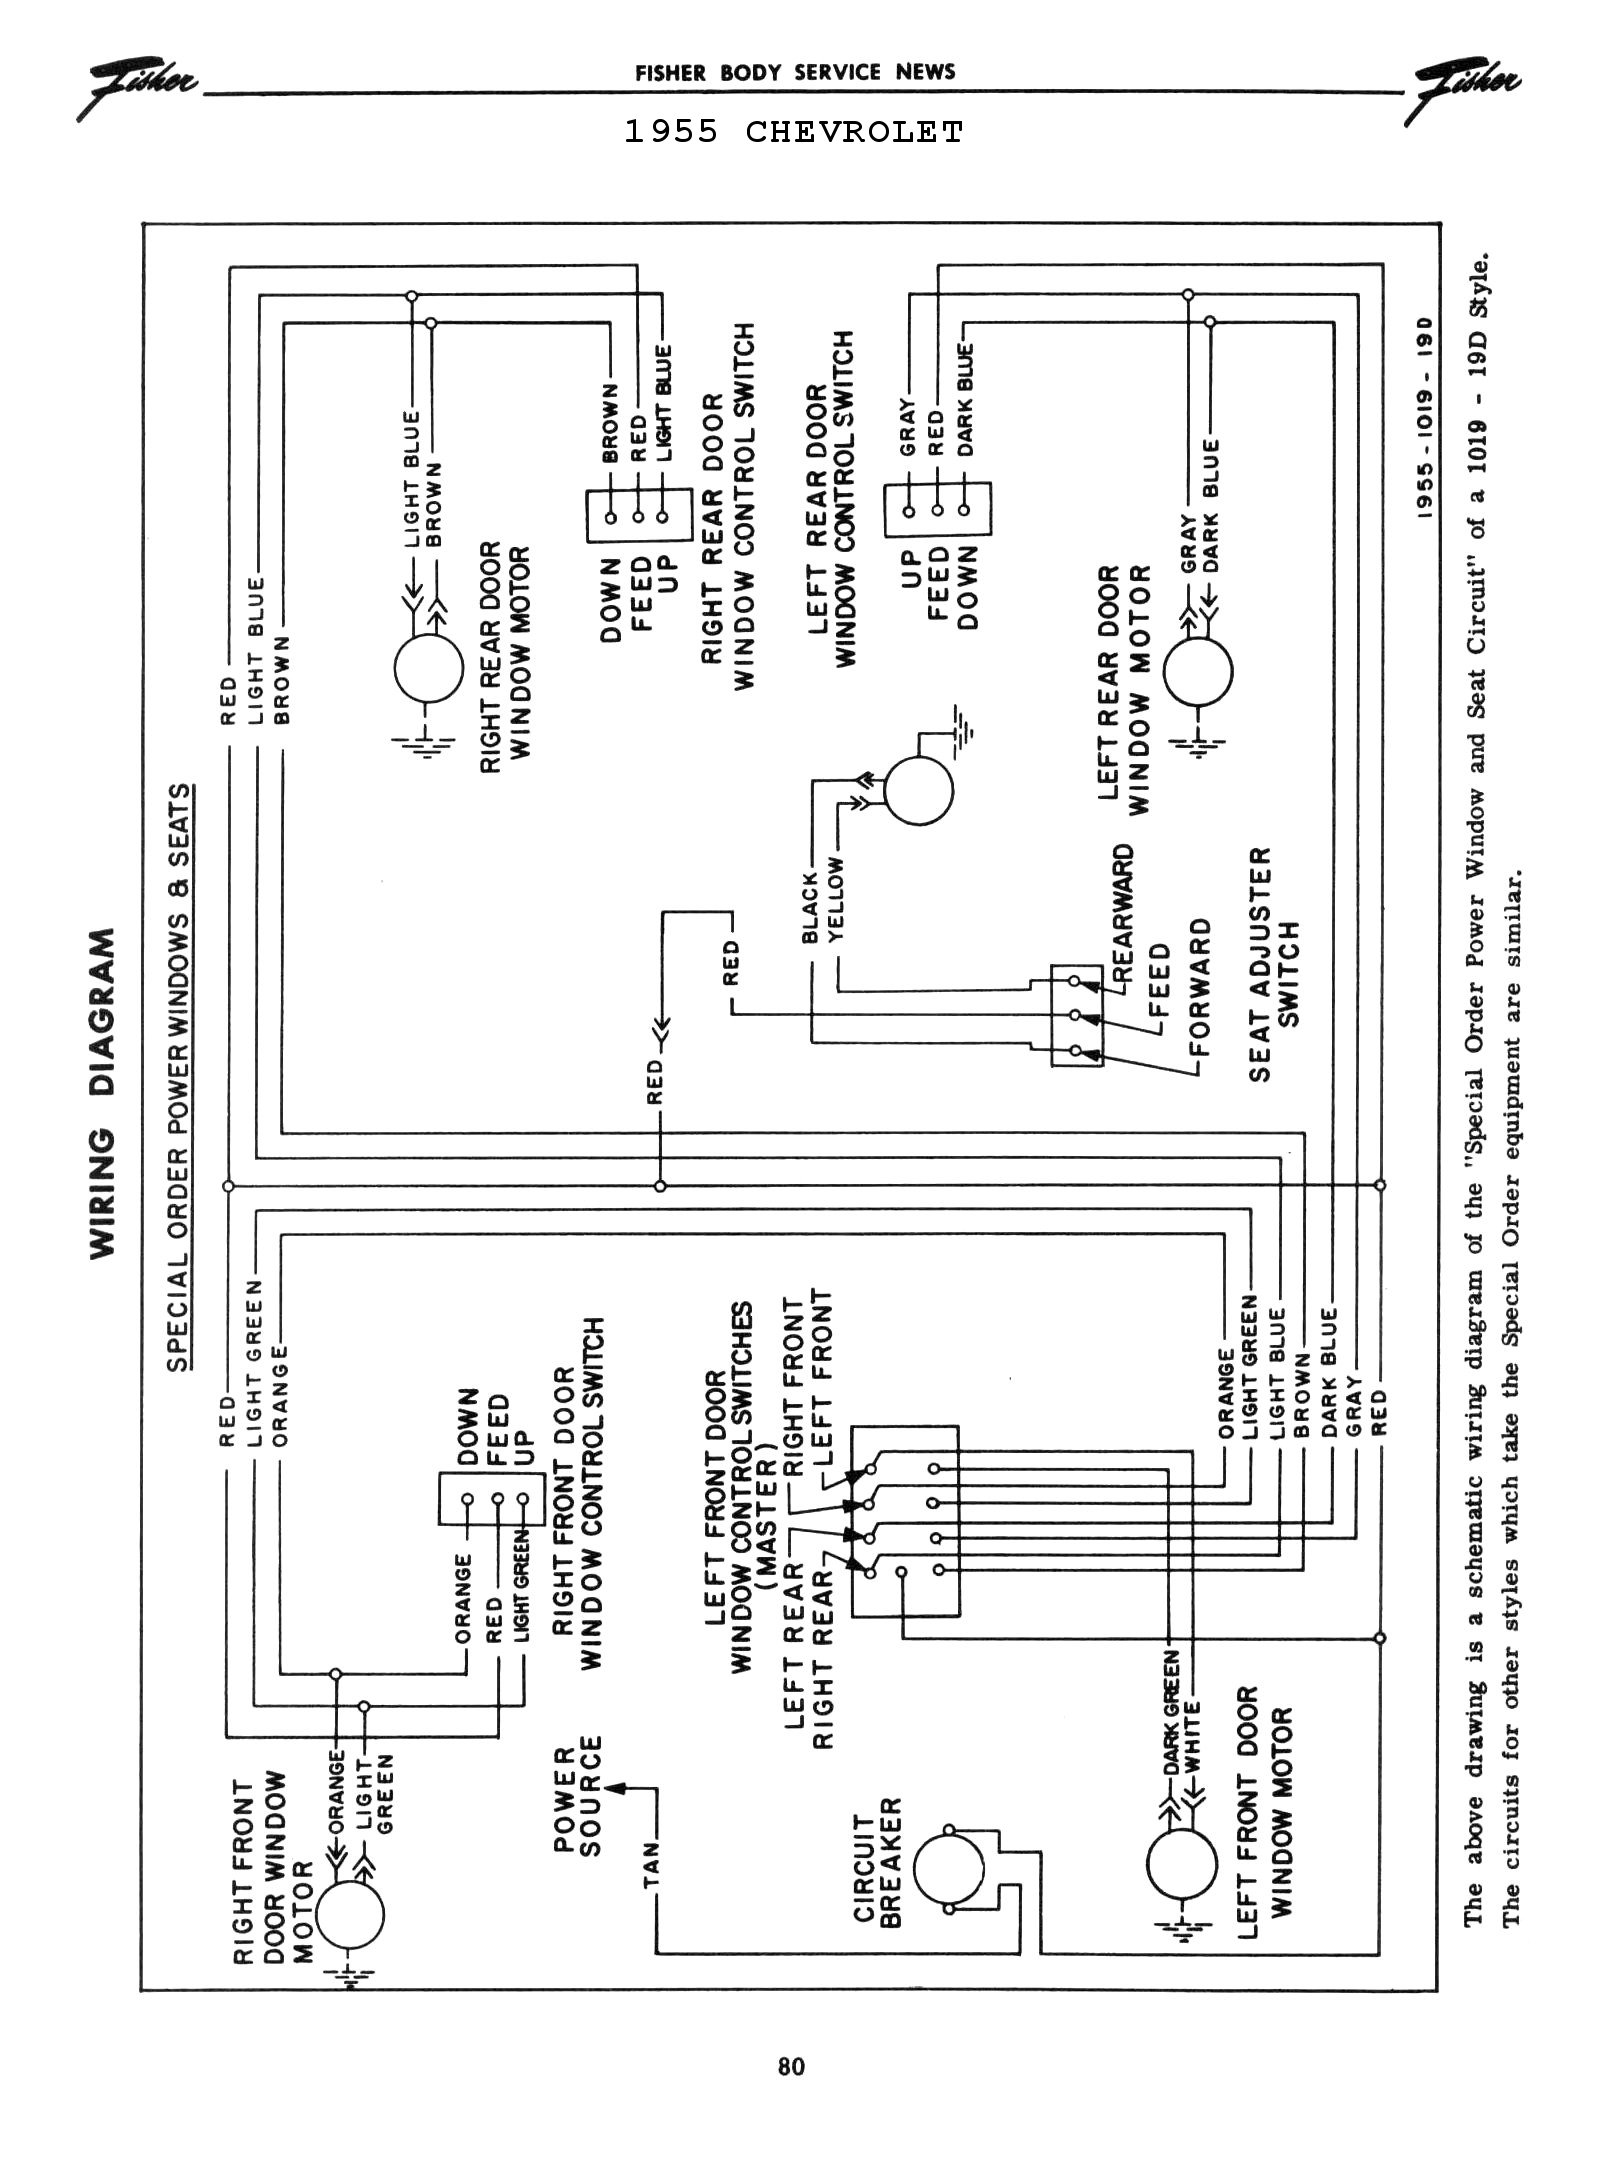 55fsn140180 chevy wiring diagrams chevy power window wiring diagram at gsmx.co